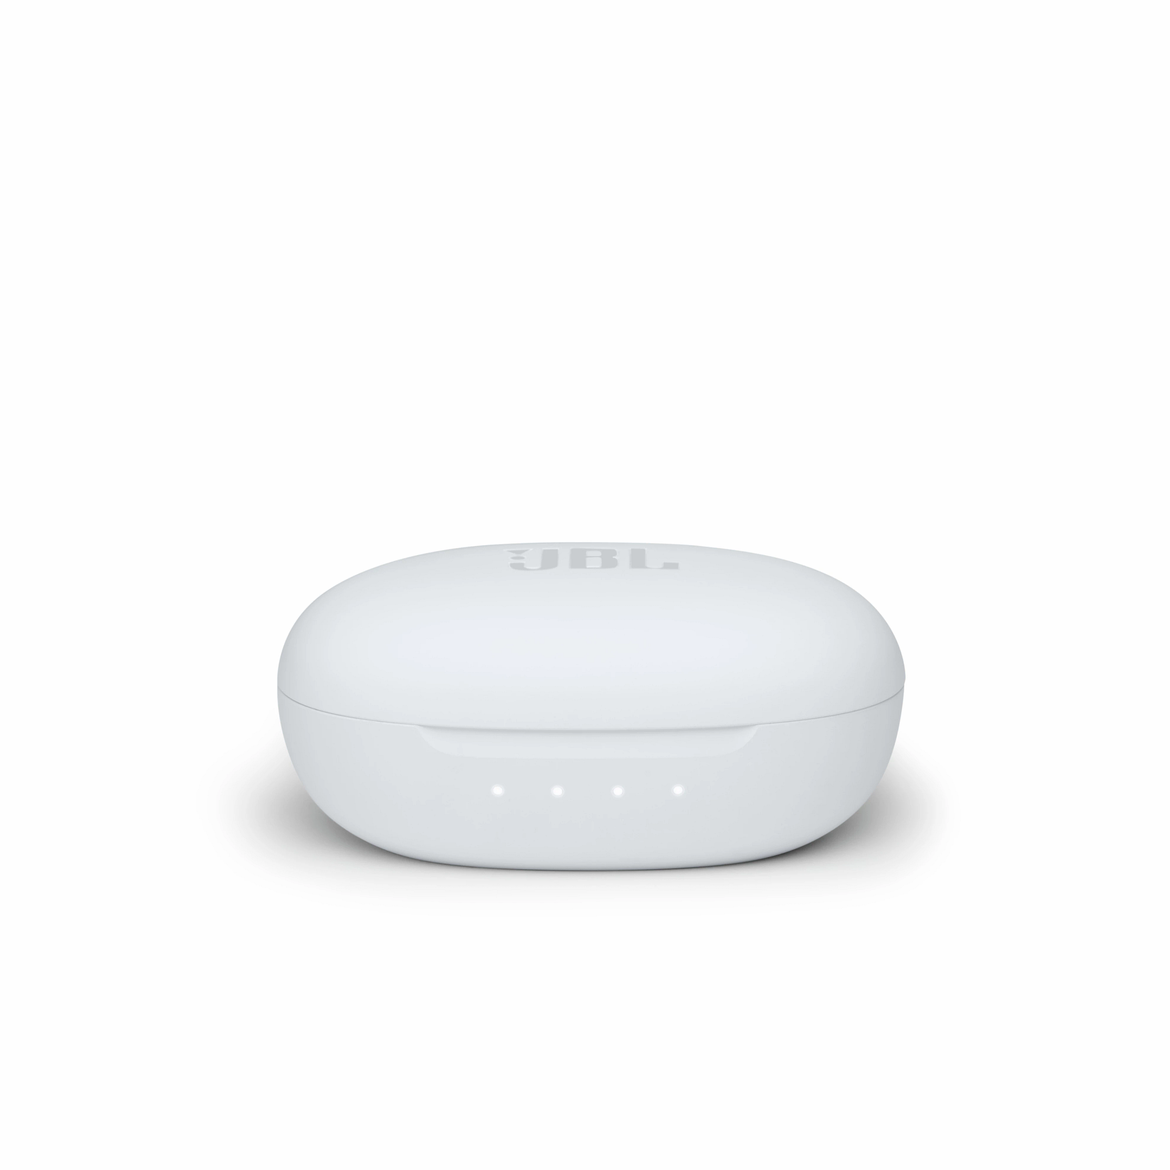 JBL_FREE_II_Product image_Case Front_White